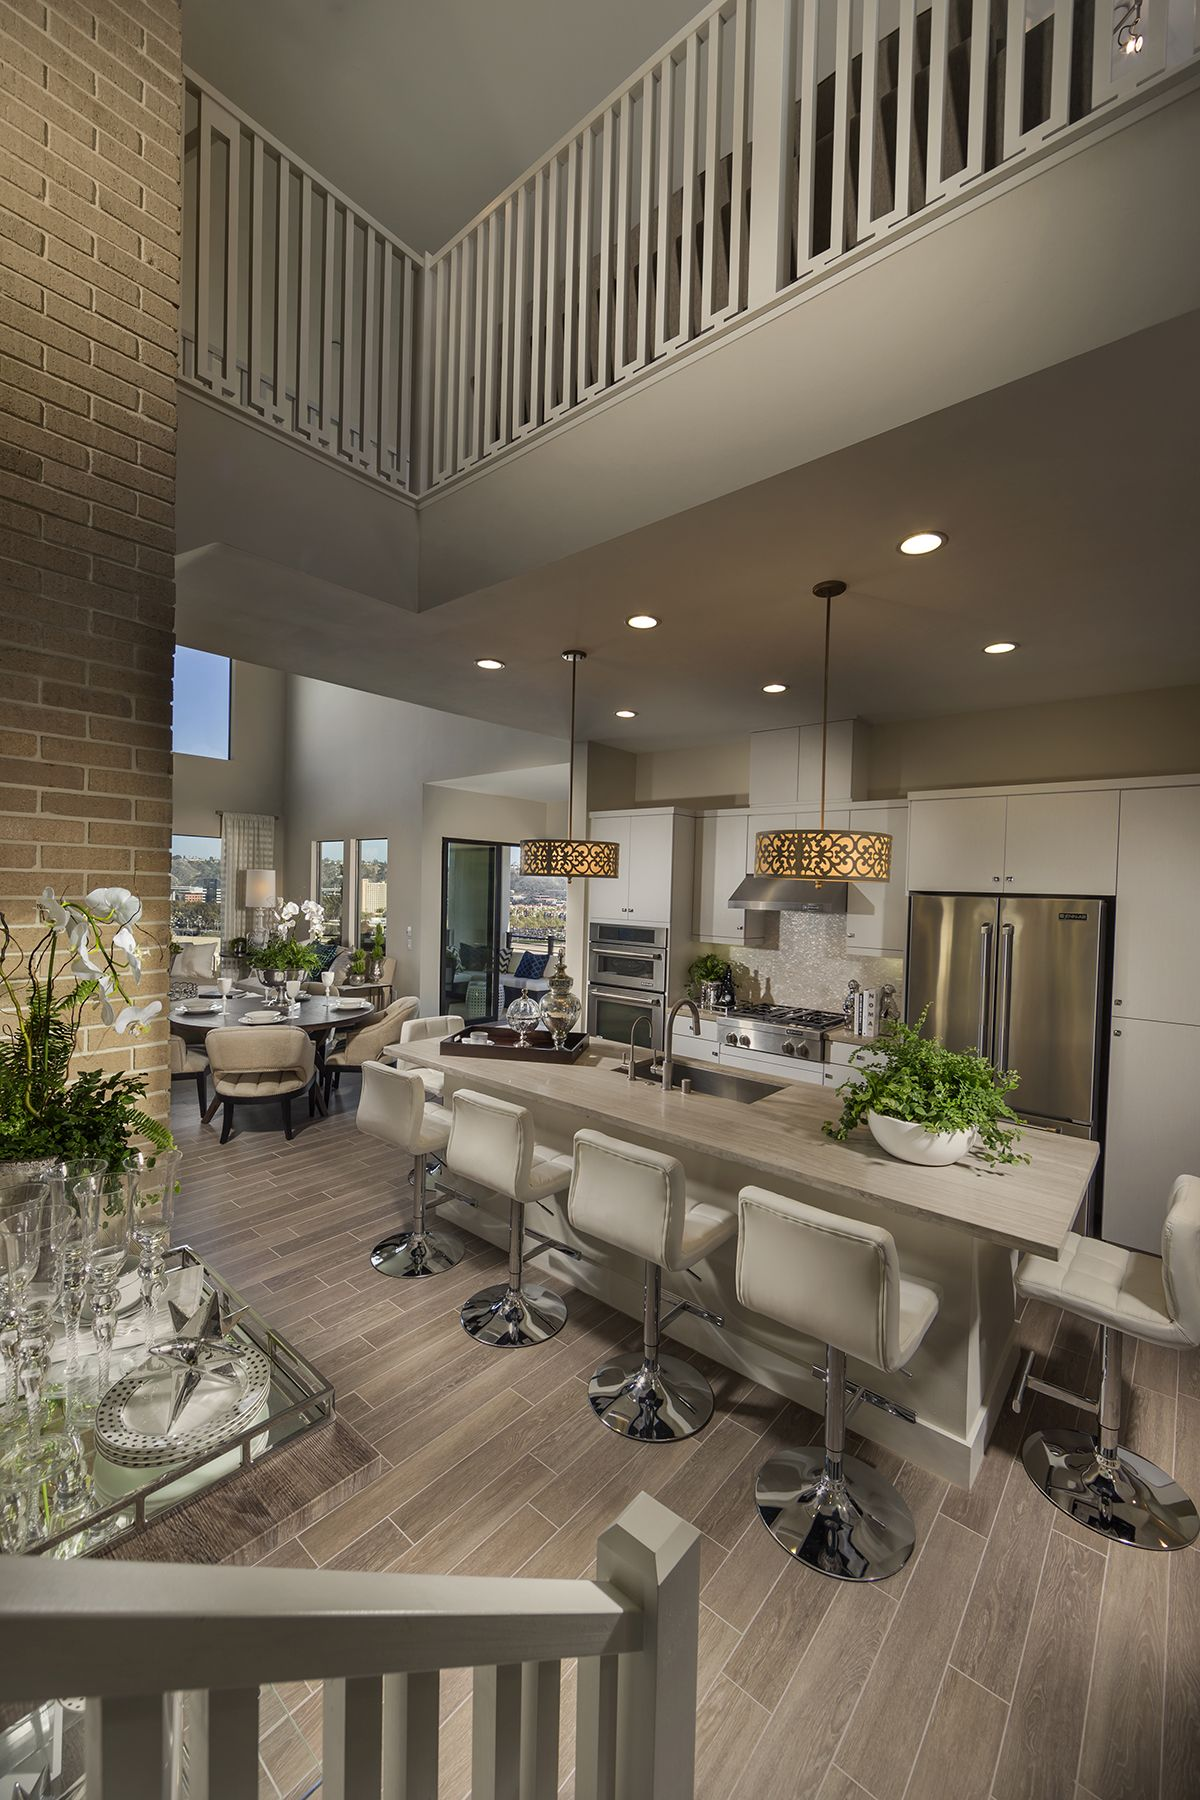 Plan 2 penthouse loft style living lucent shea homes san diego mission valley civita room for Shea homes design center san diego